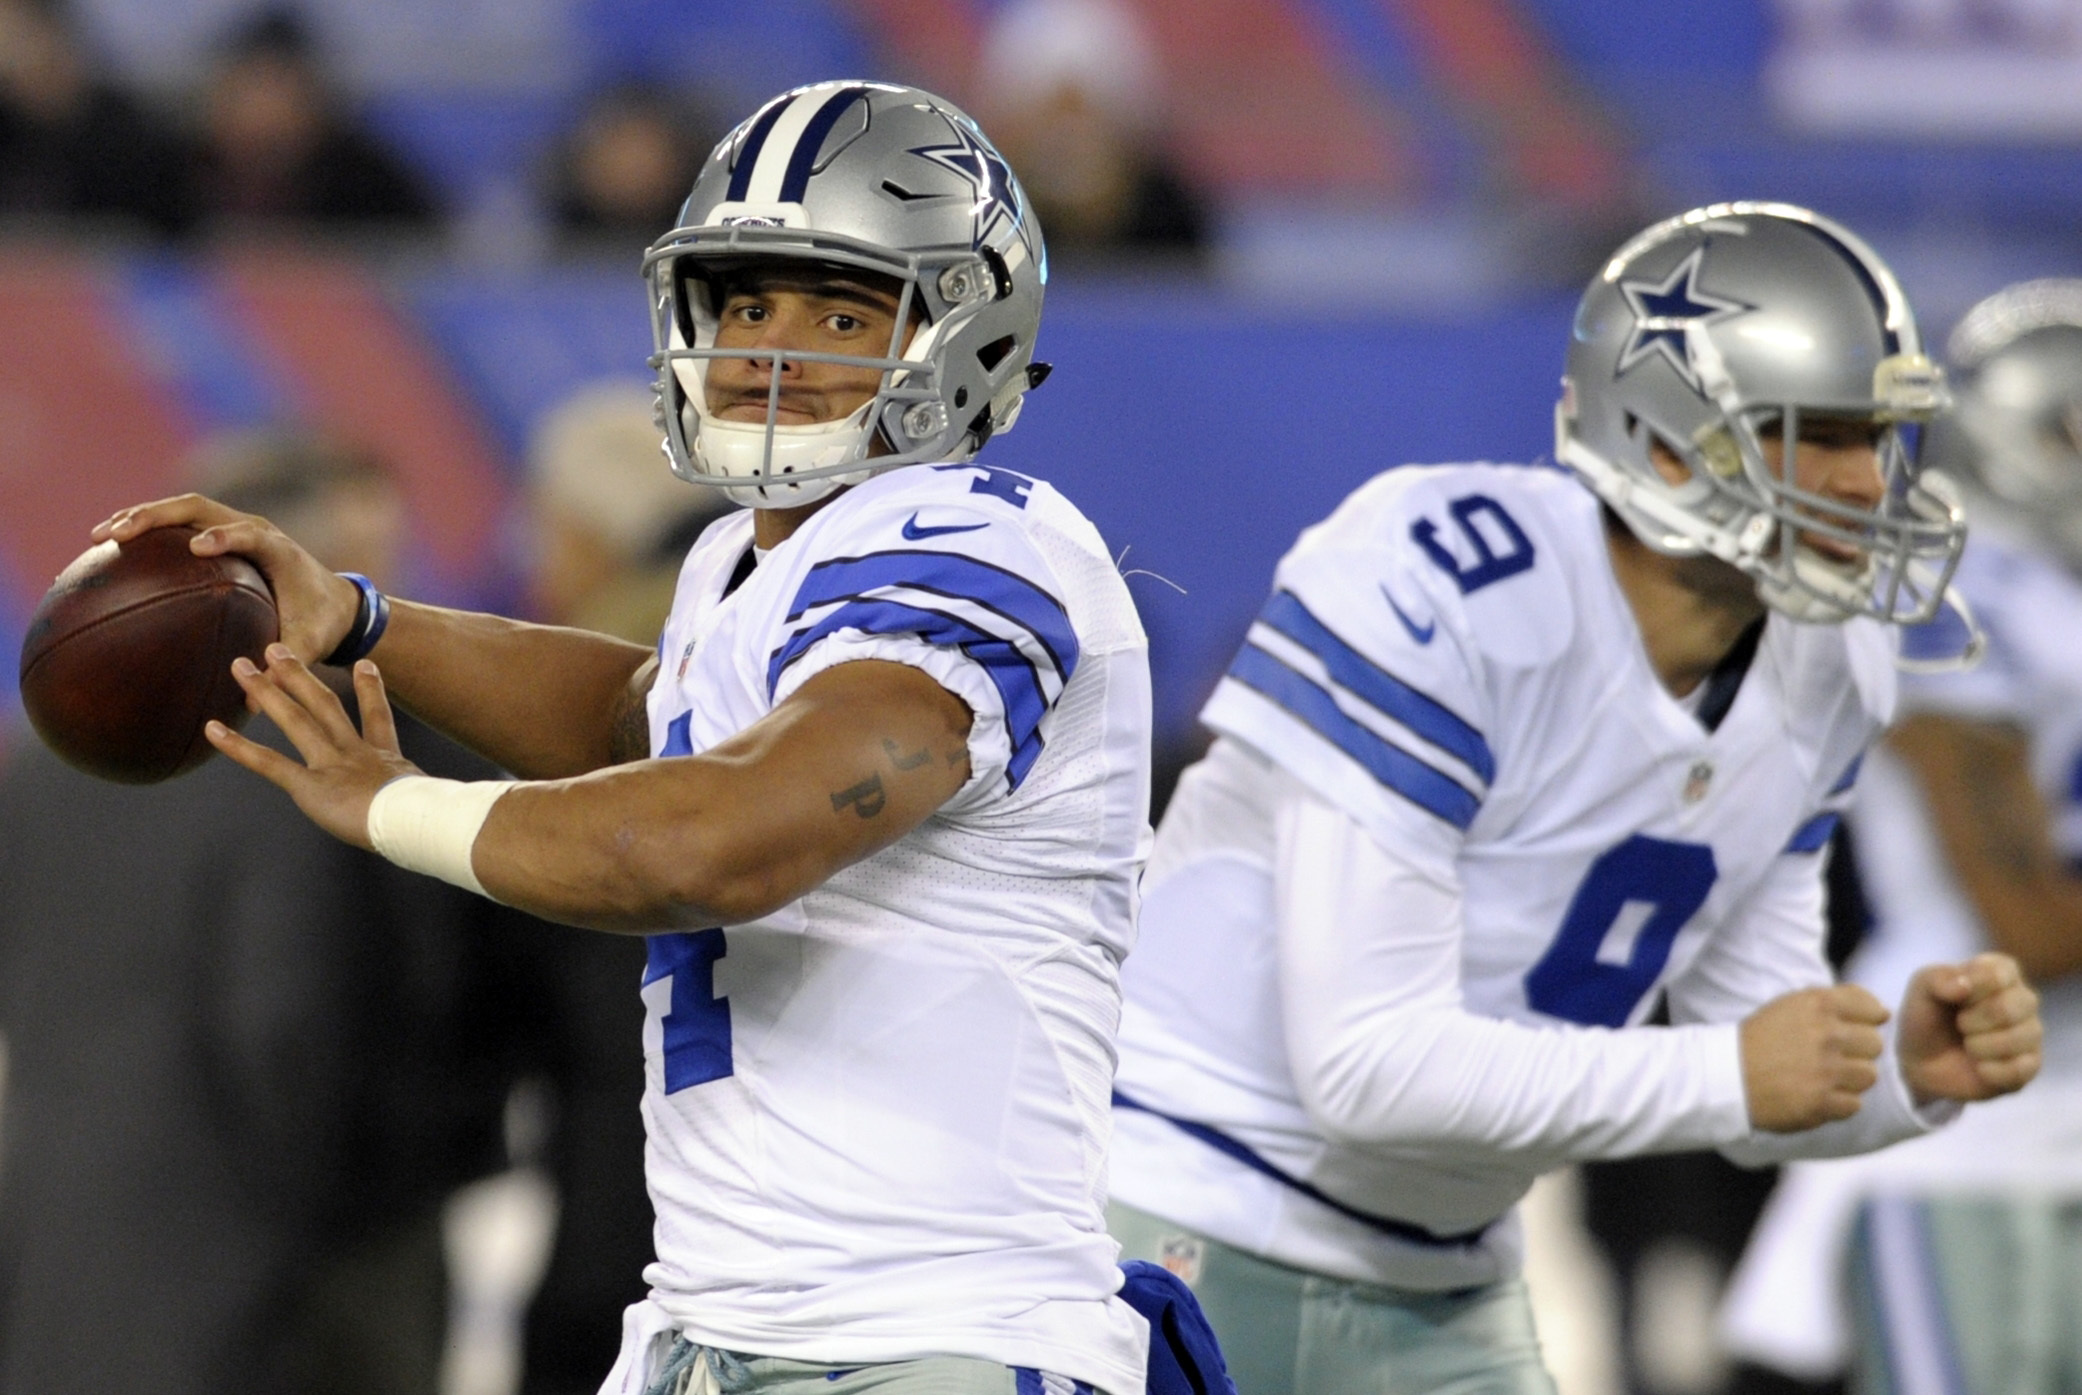 Dallas Cowboys quarterback Dak Prescott (4) and Tony Romo (9) warm up before an NFL football game against the New York Giants, Sunday, Dec. 11, 2016, in East Rutherford, N.J. (AP Photo/Bill Kostroun)